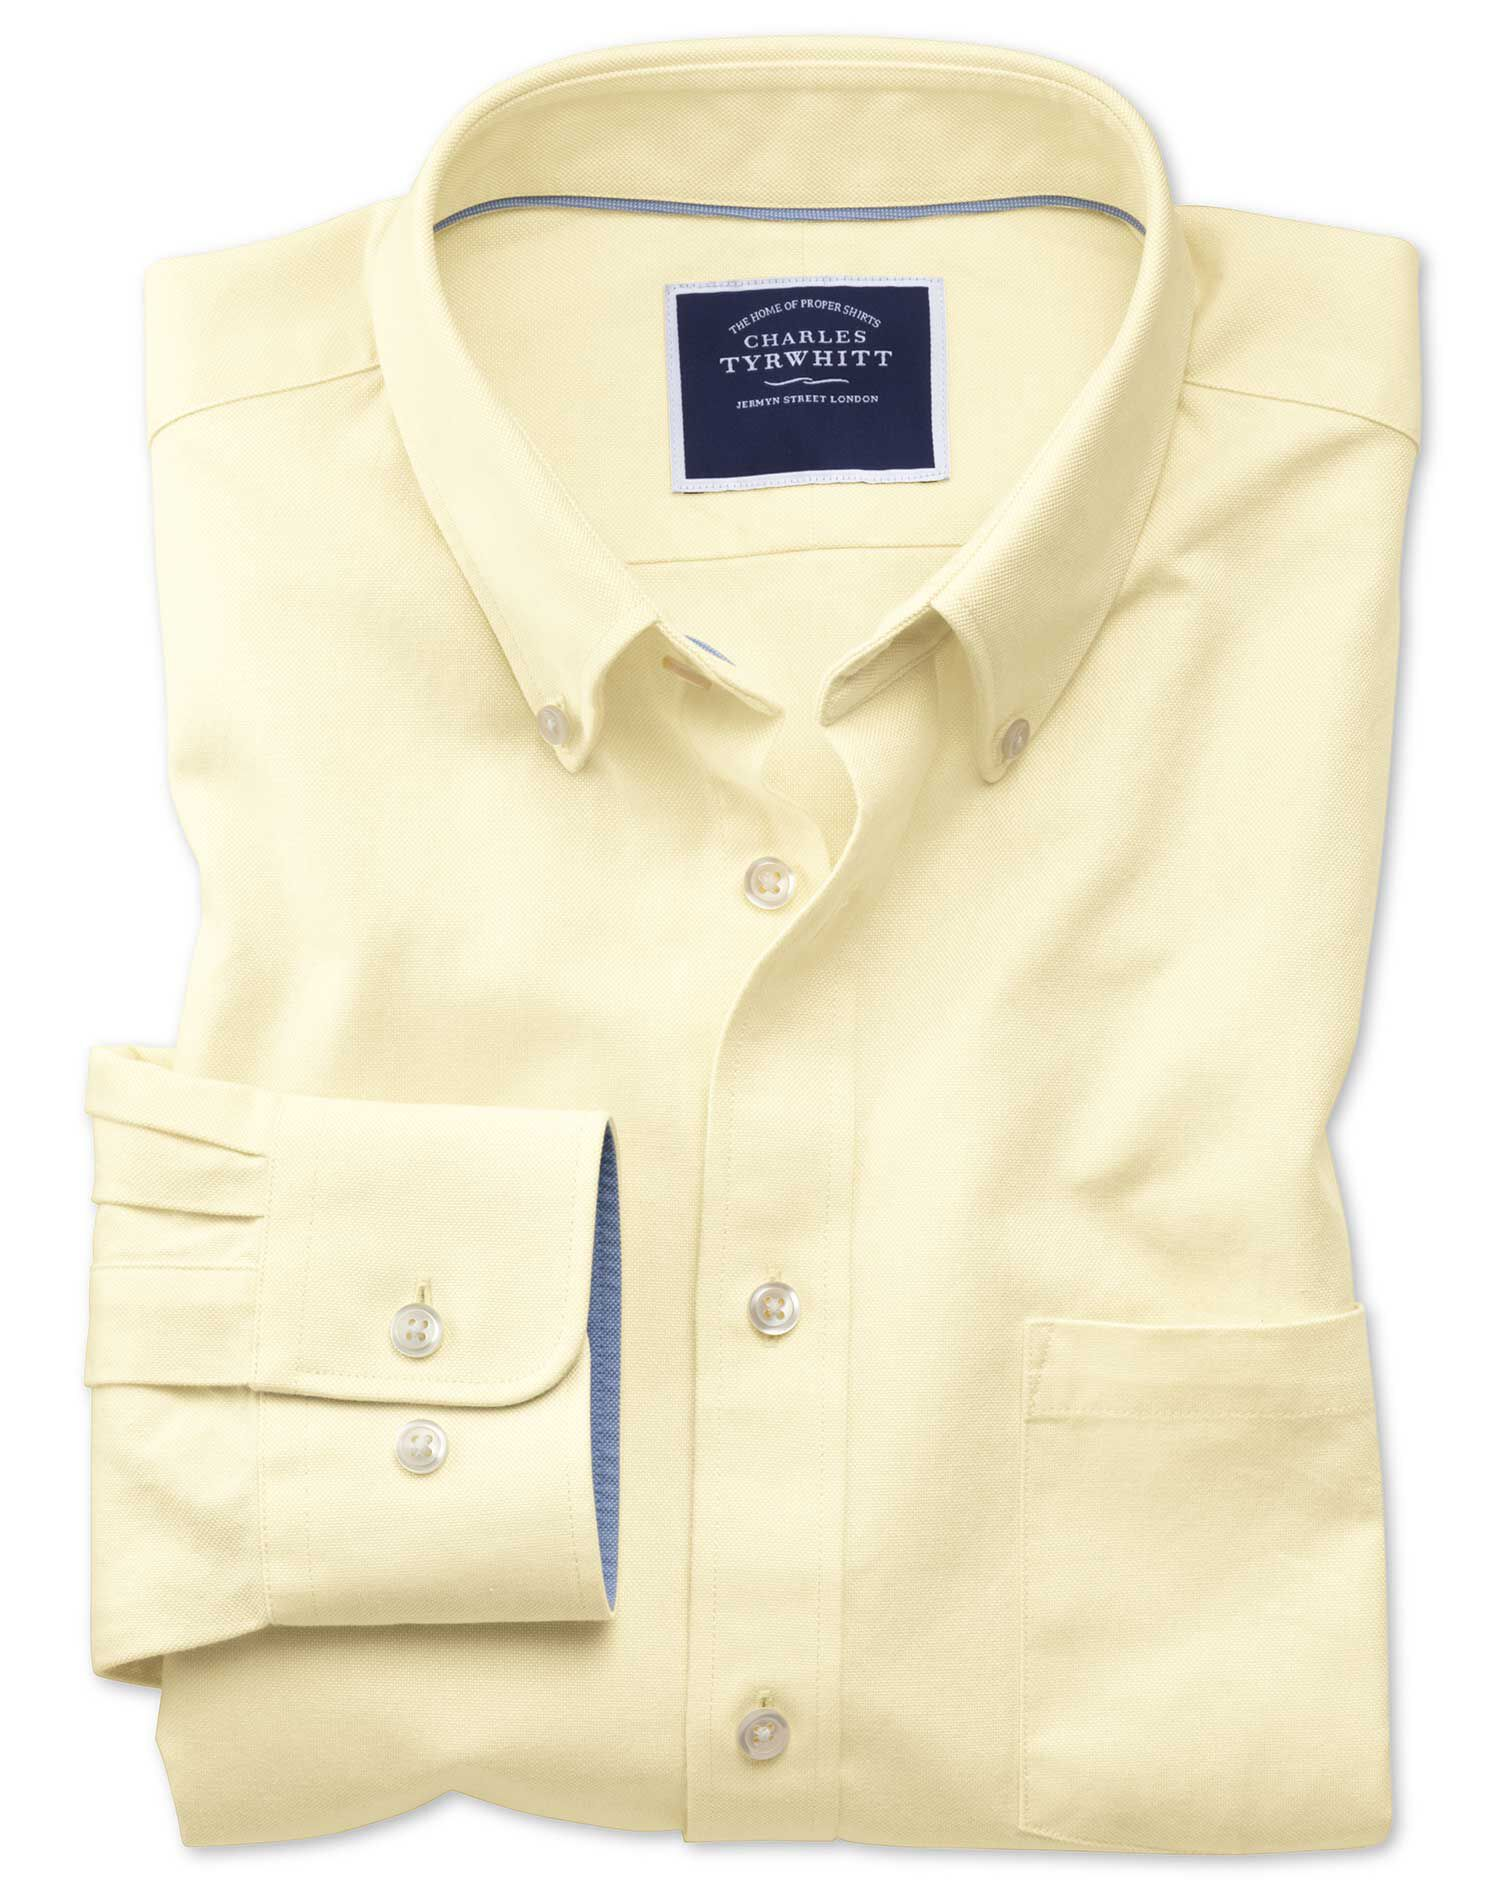 Shirts Mens Size M~charles Tyrwhitt~yellow~blue~oxford Weave Casual~button-down~shirt Comfortable Feel Clothing, Shoes & Accessories